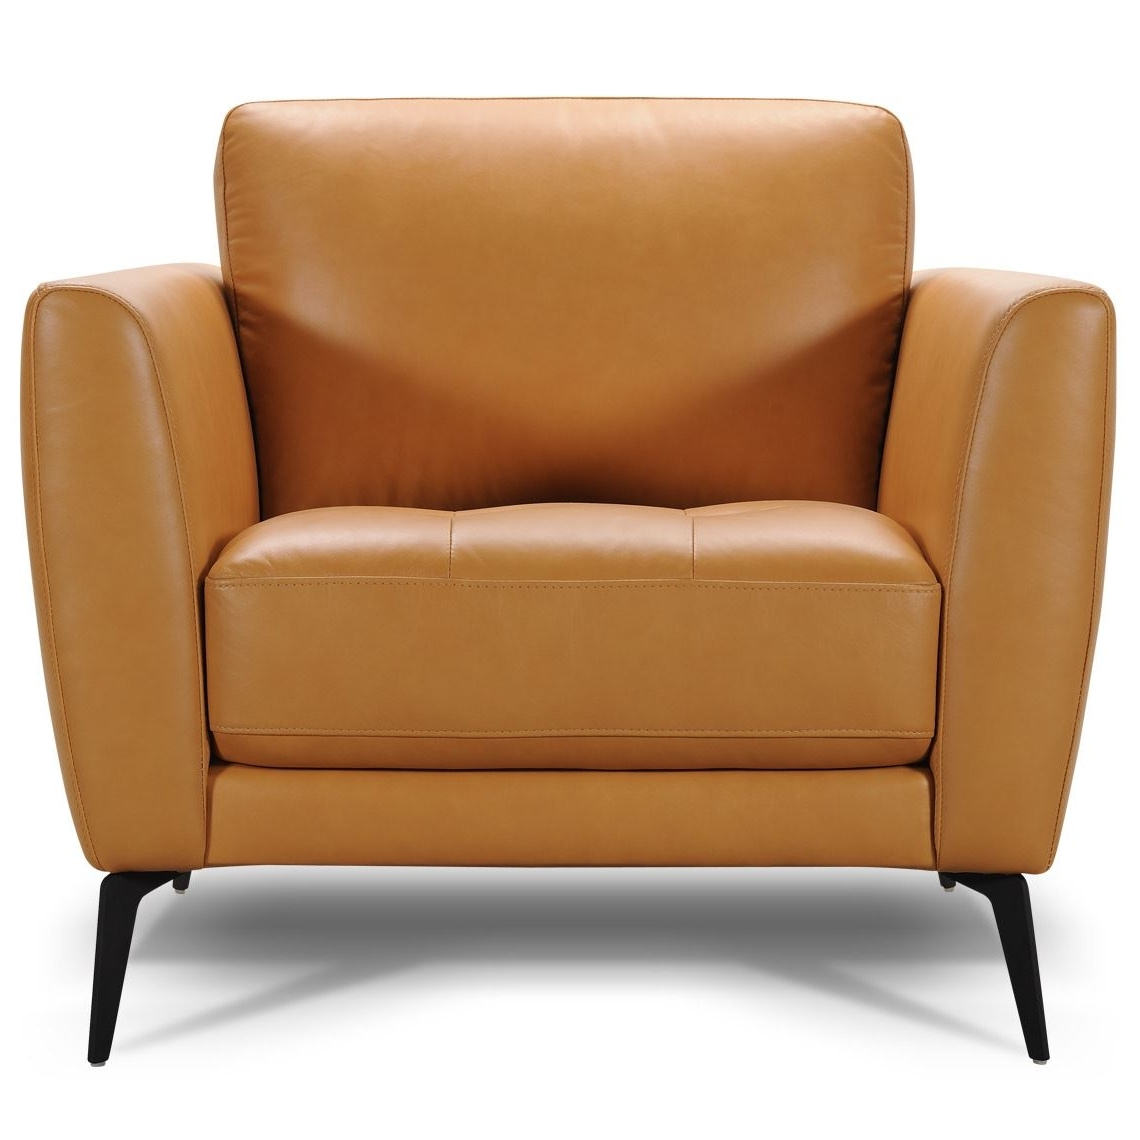 Caramel Attica Armchair (View 6 of 20)